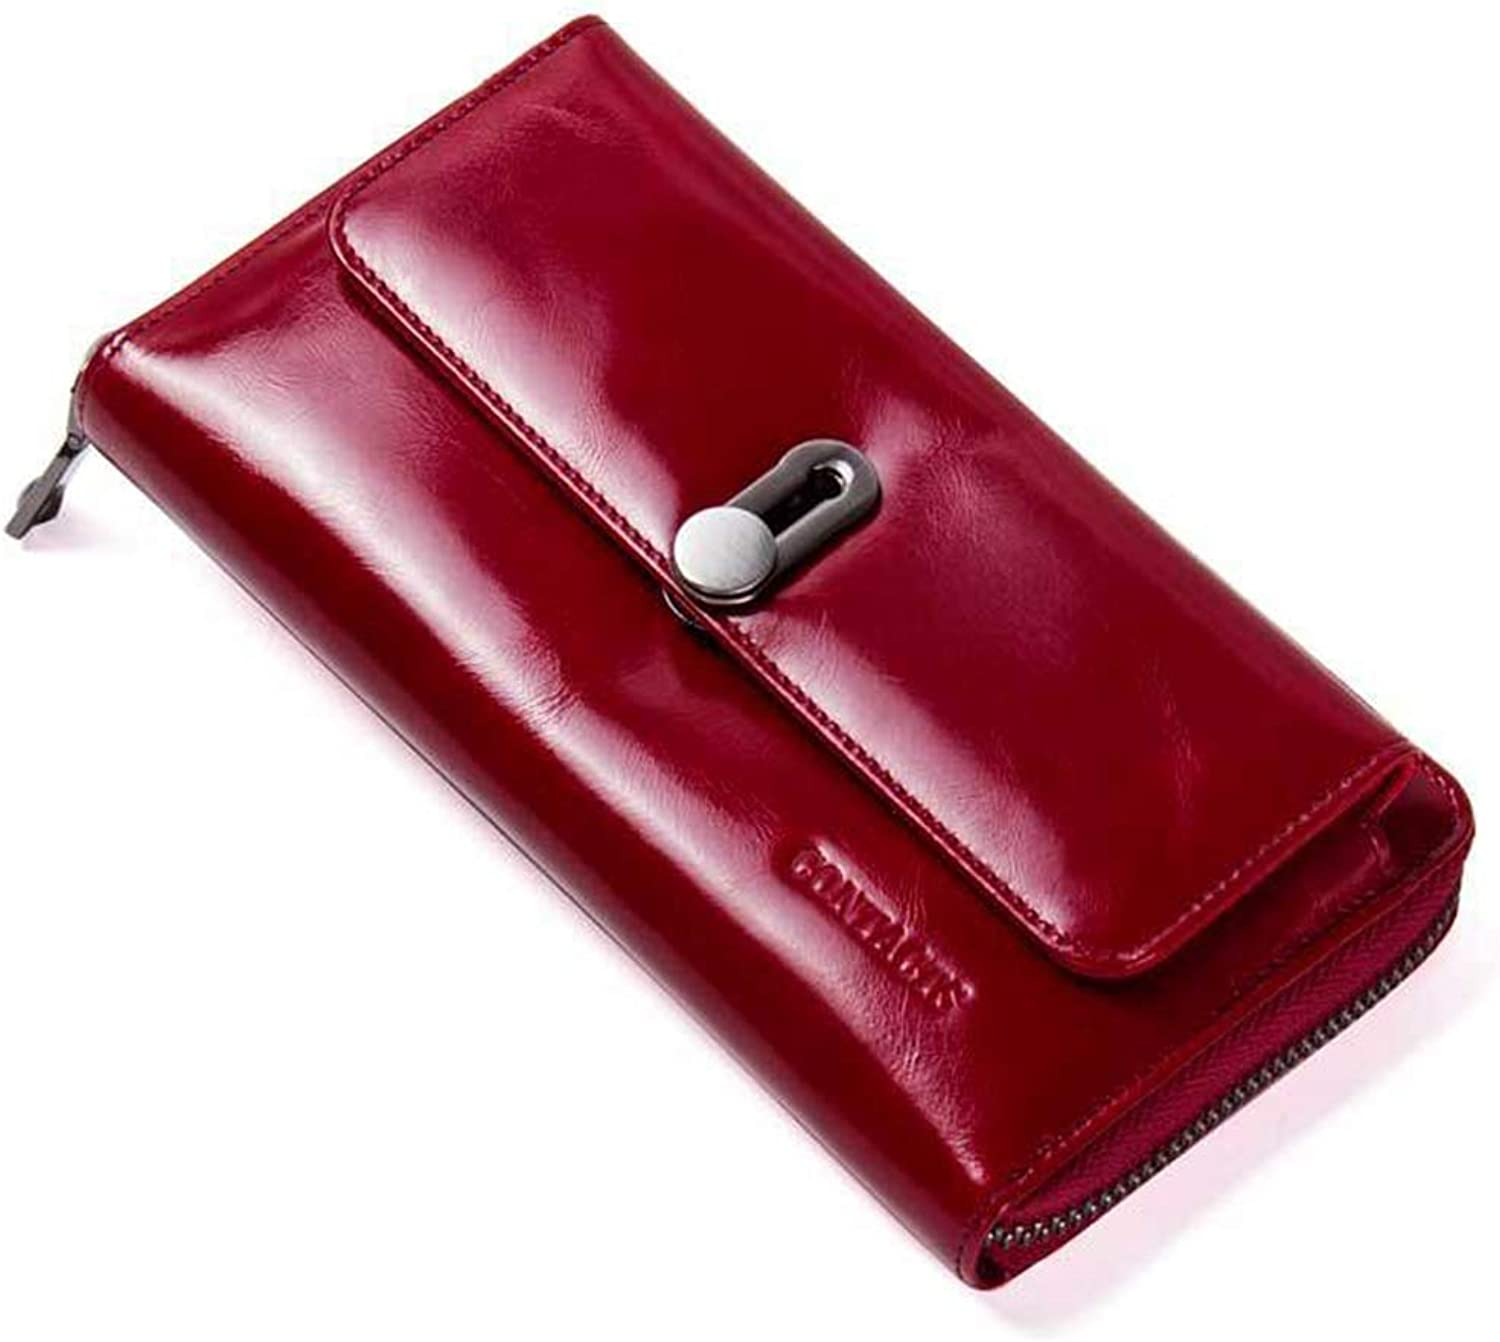 Sturdy Women's Leather Wallet Multifunctional Zipper Clutch Casual Wallet Red Yellow. Large Capacity (color   Red)